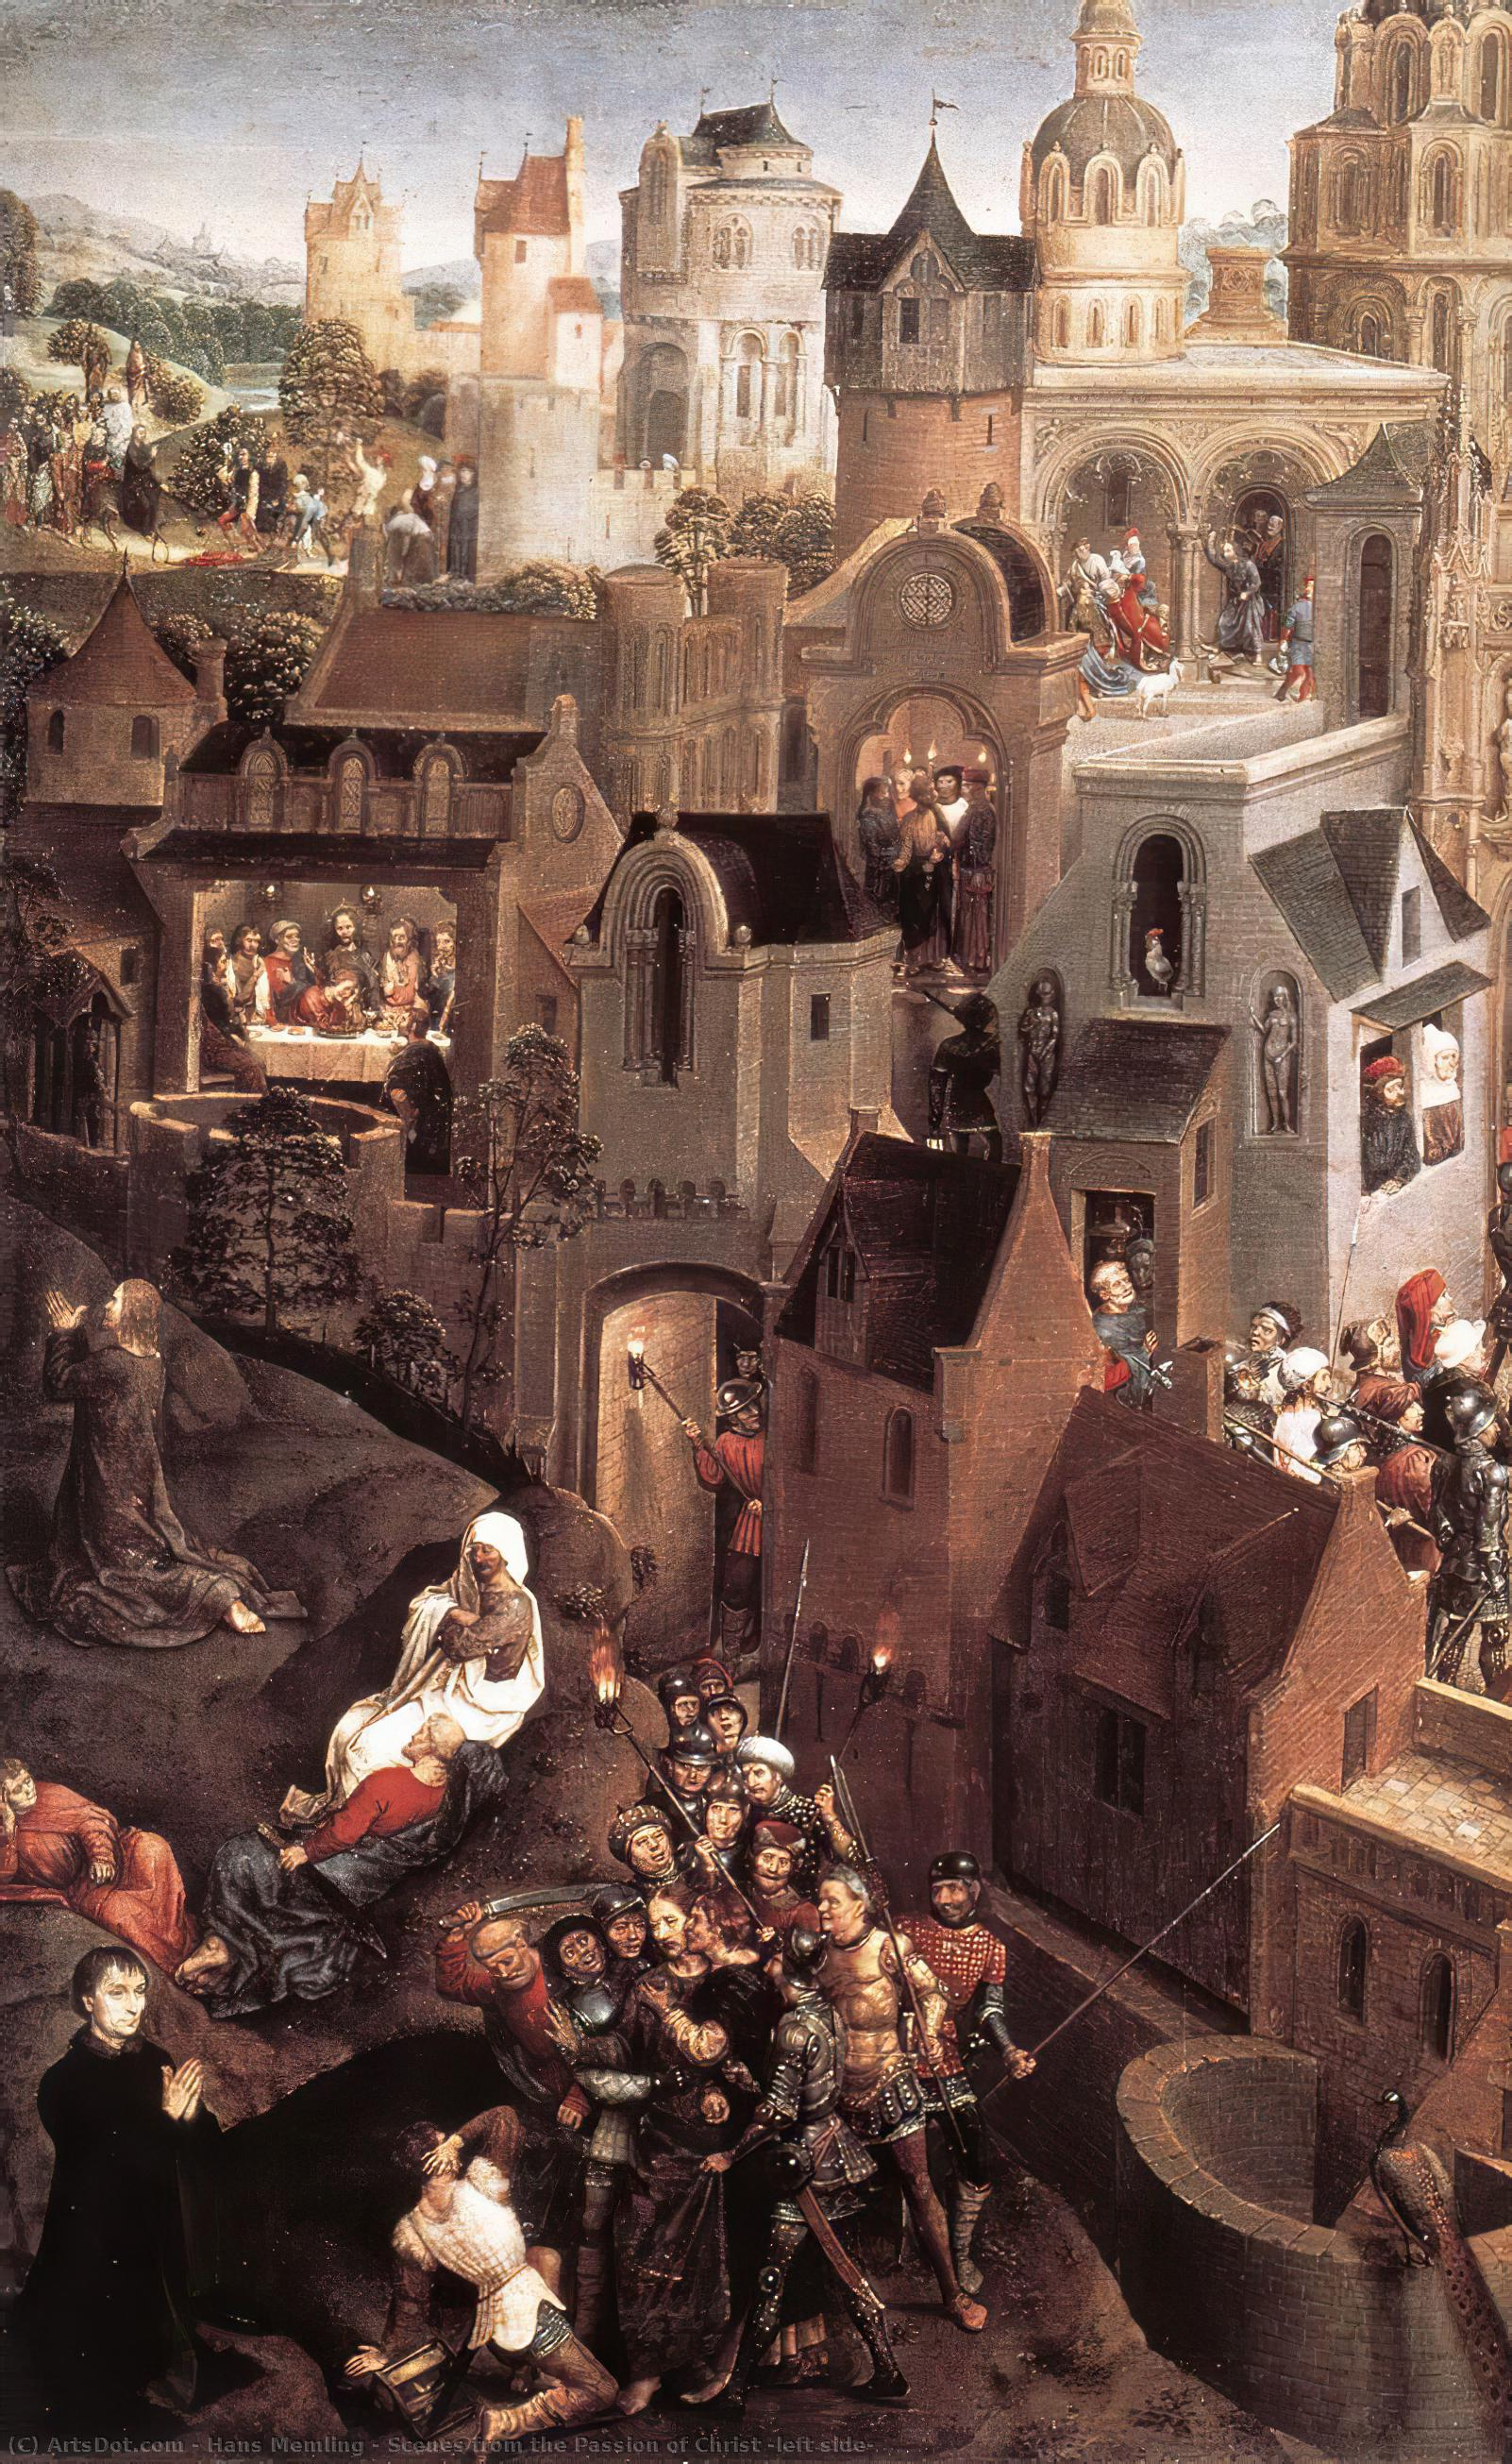 Wikioo.org - The Encyclopedia of Fine Arts - Painting, Artwork by Hans Memling - Scenes from the Passion of Christ (left side)